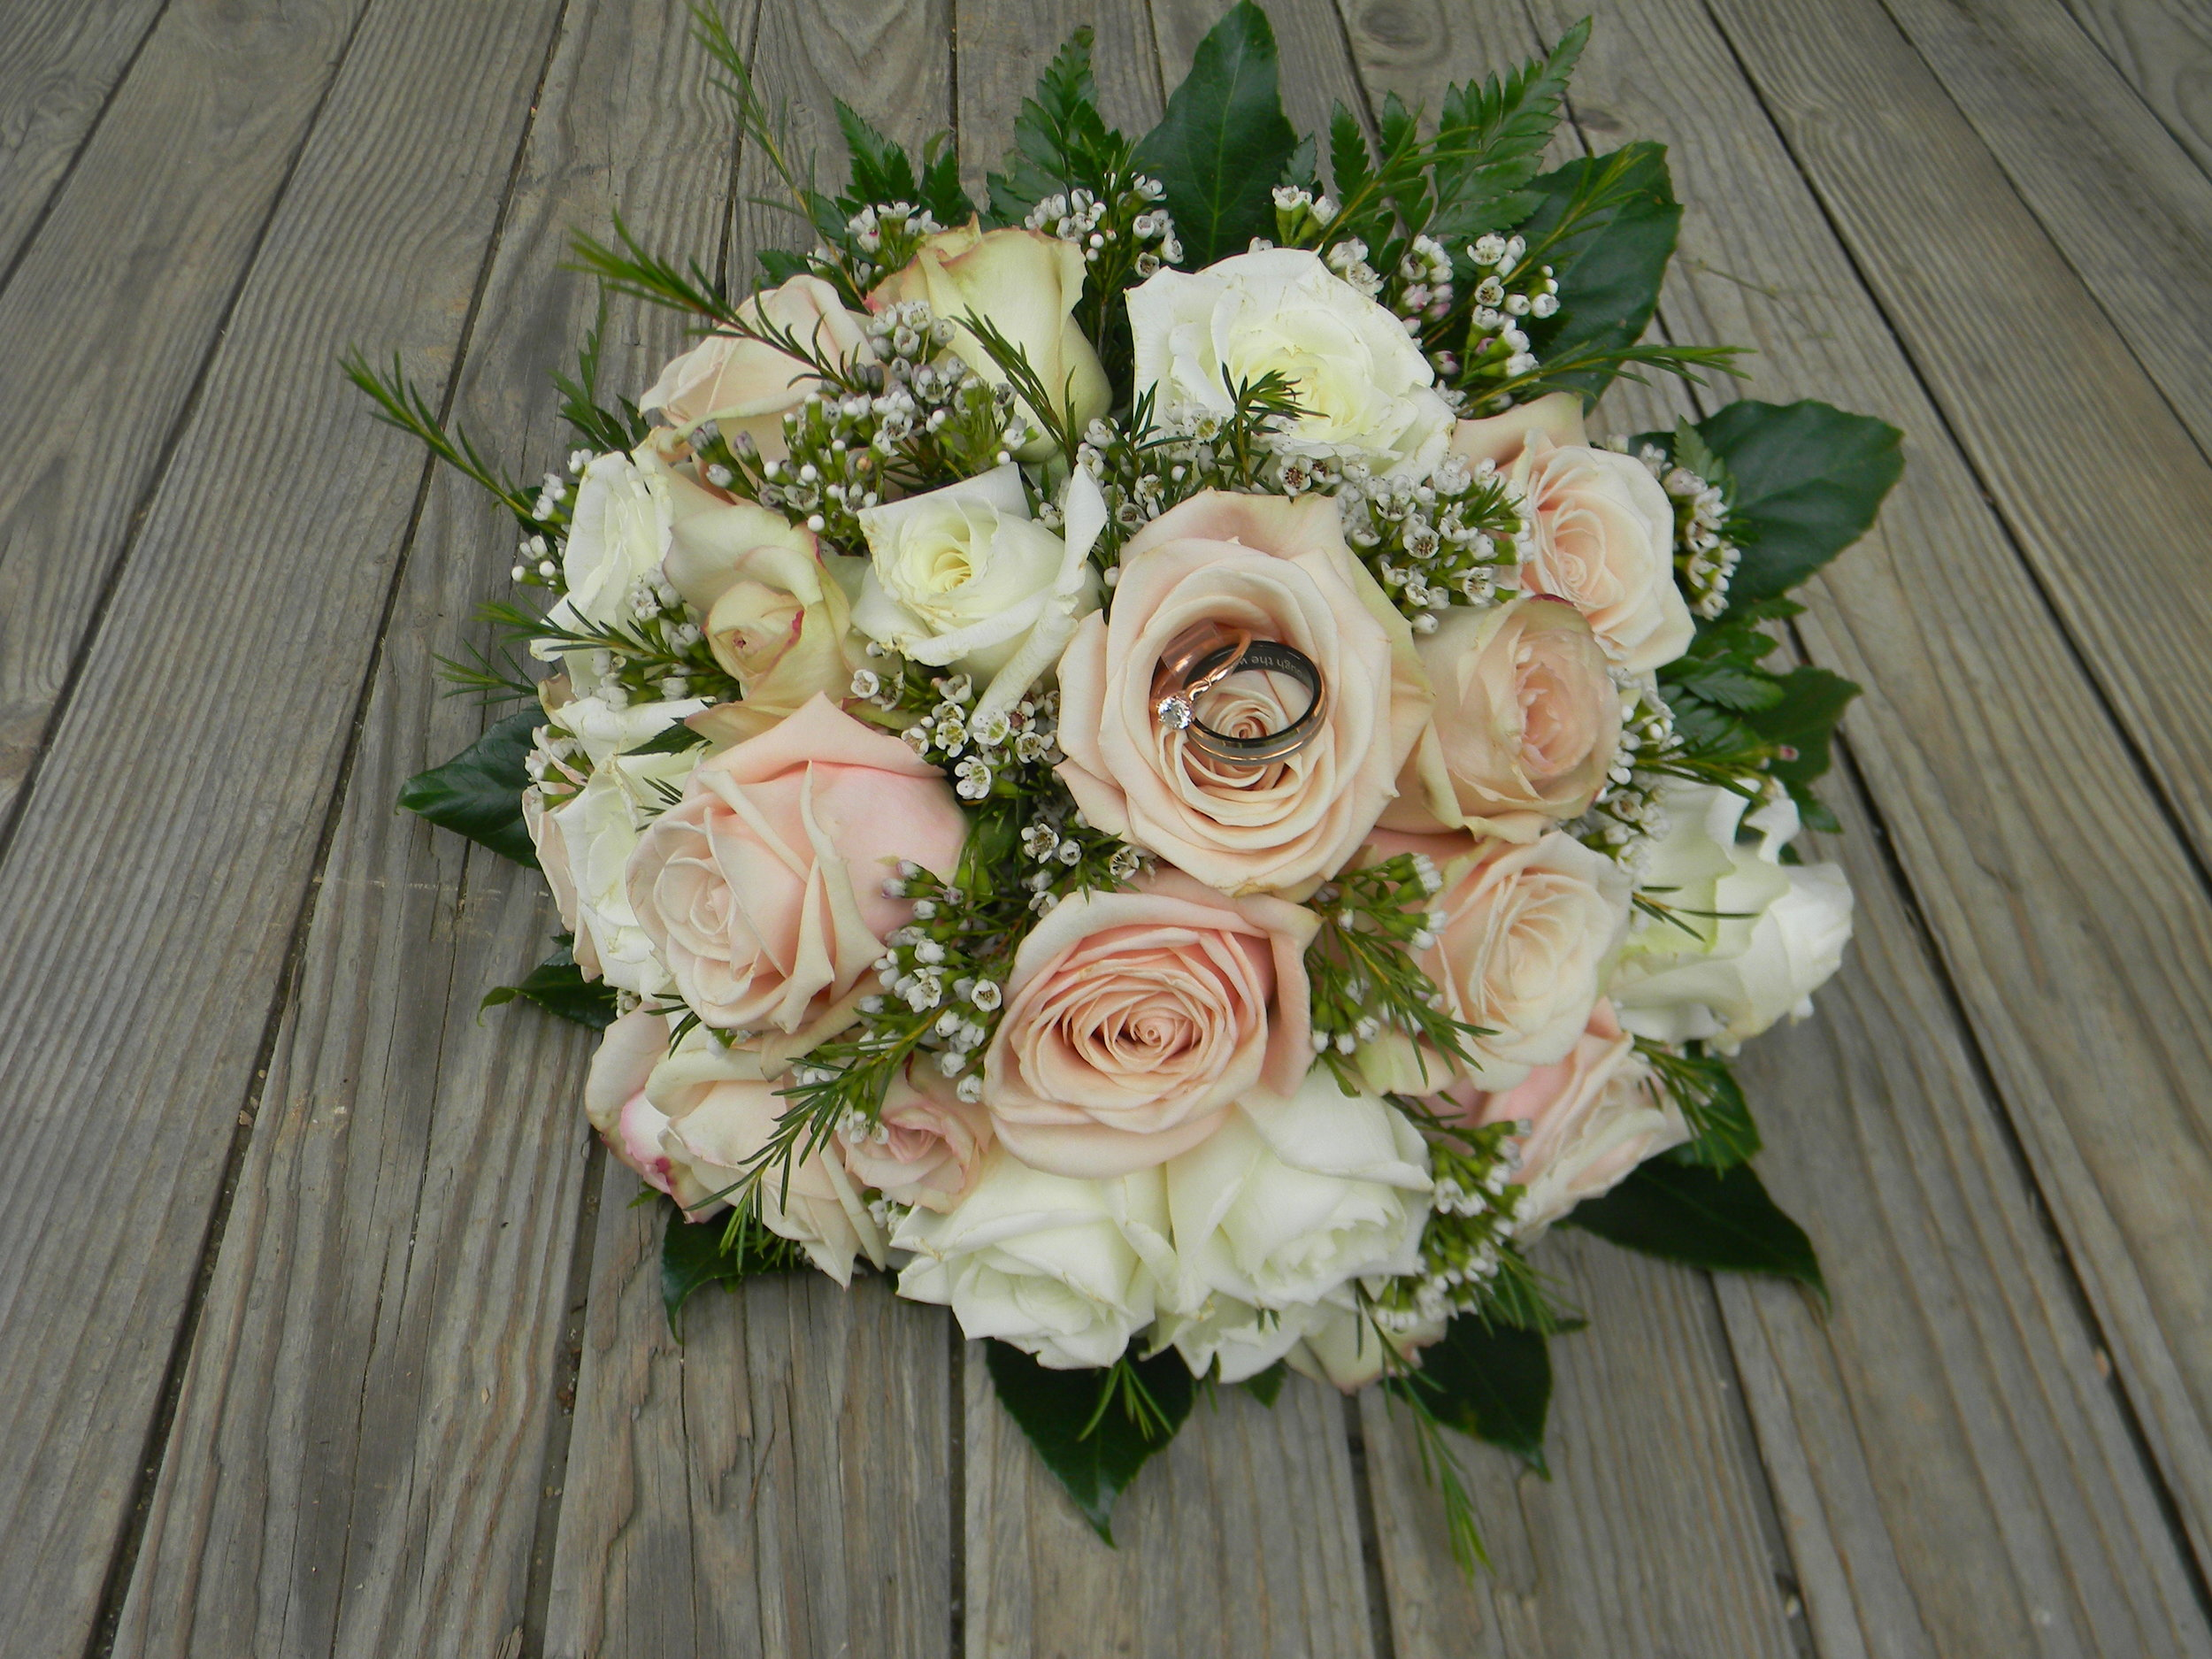 anniversary-gift-idea-silk-bridal-bouquet-recreation.jpg